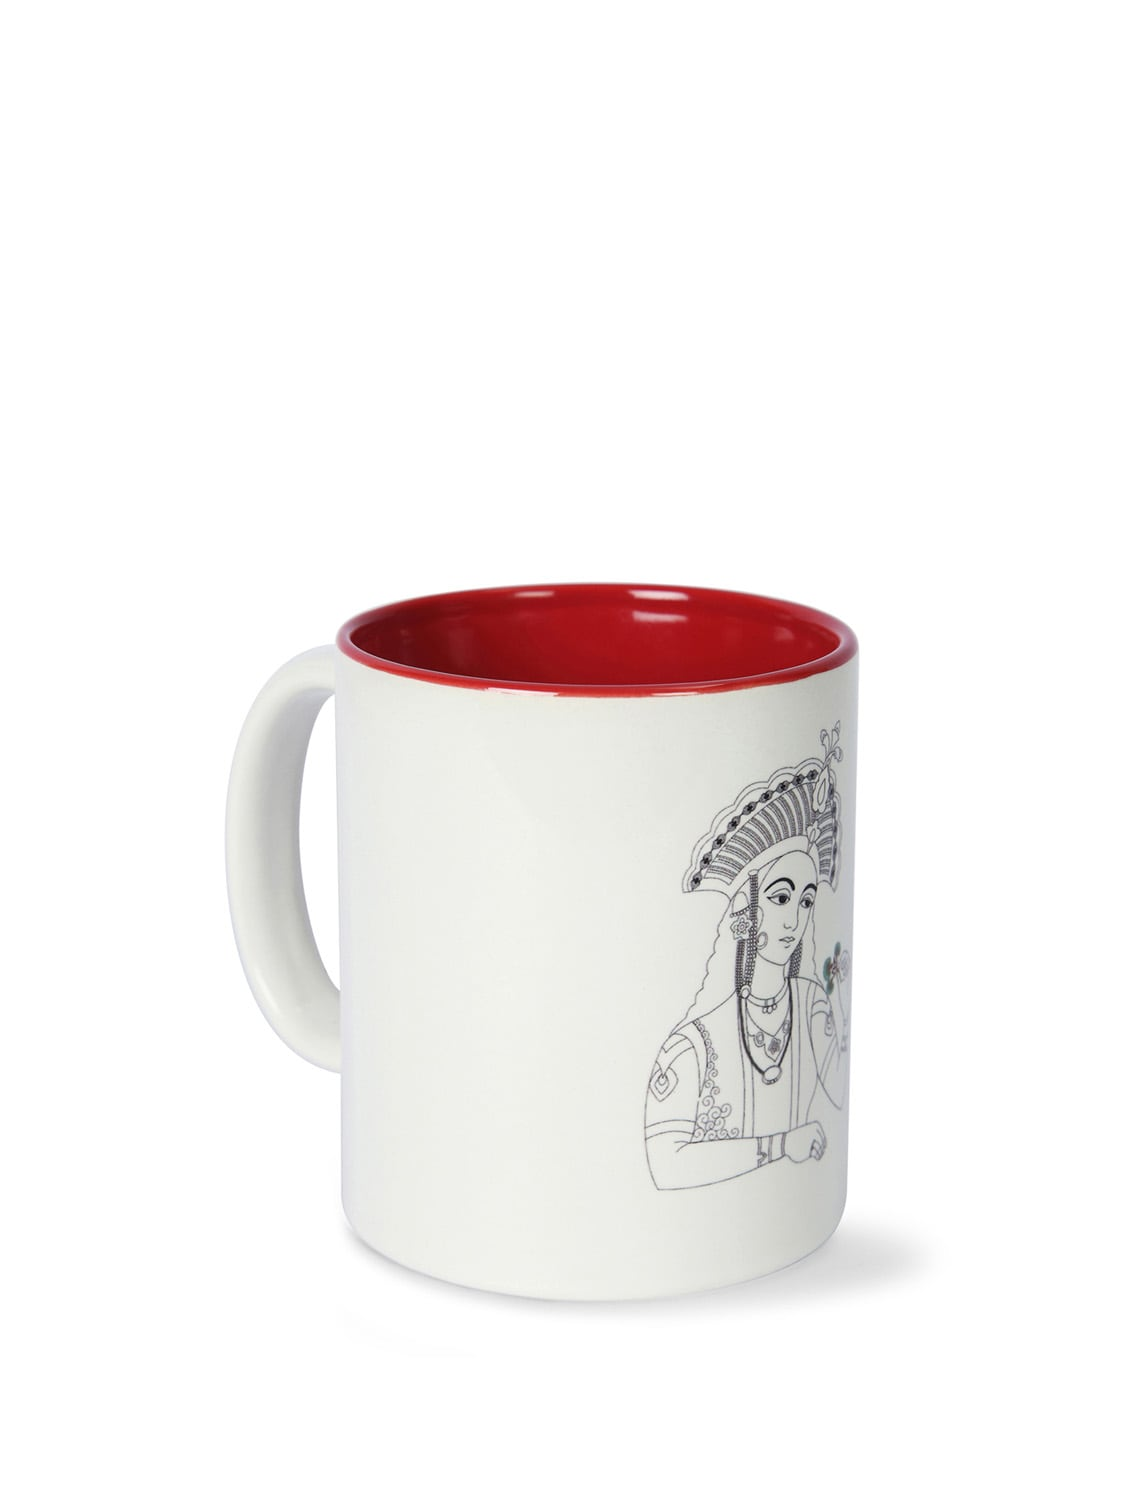 Neo Nawab Royally Hers Ceramic Coffee Mug - India Circus